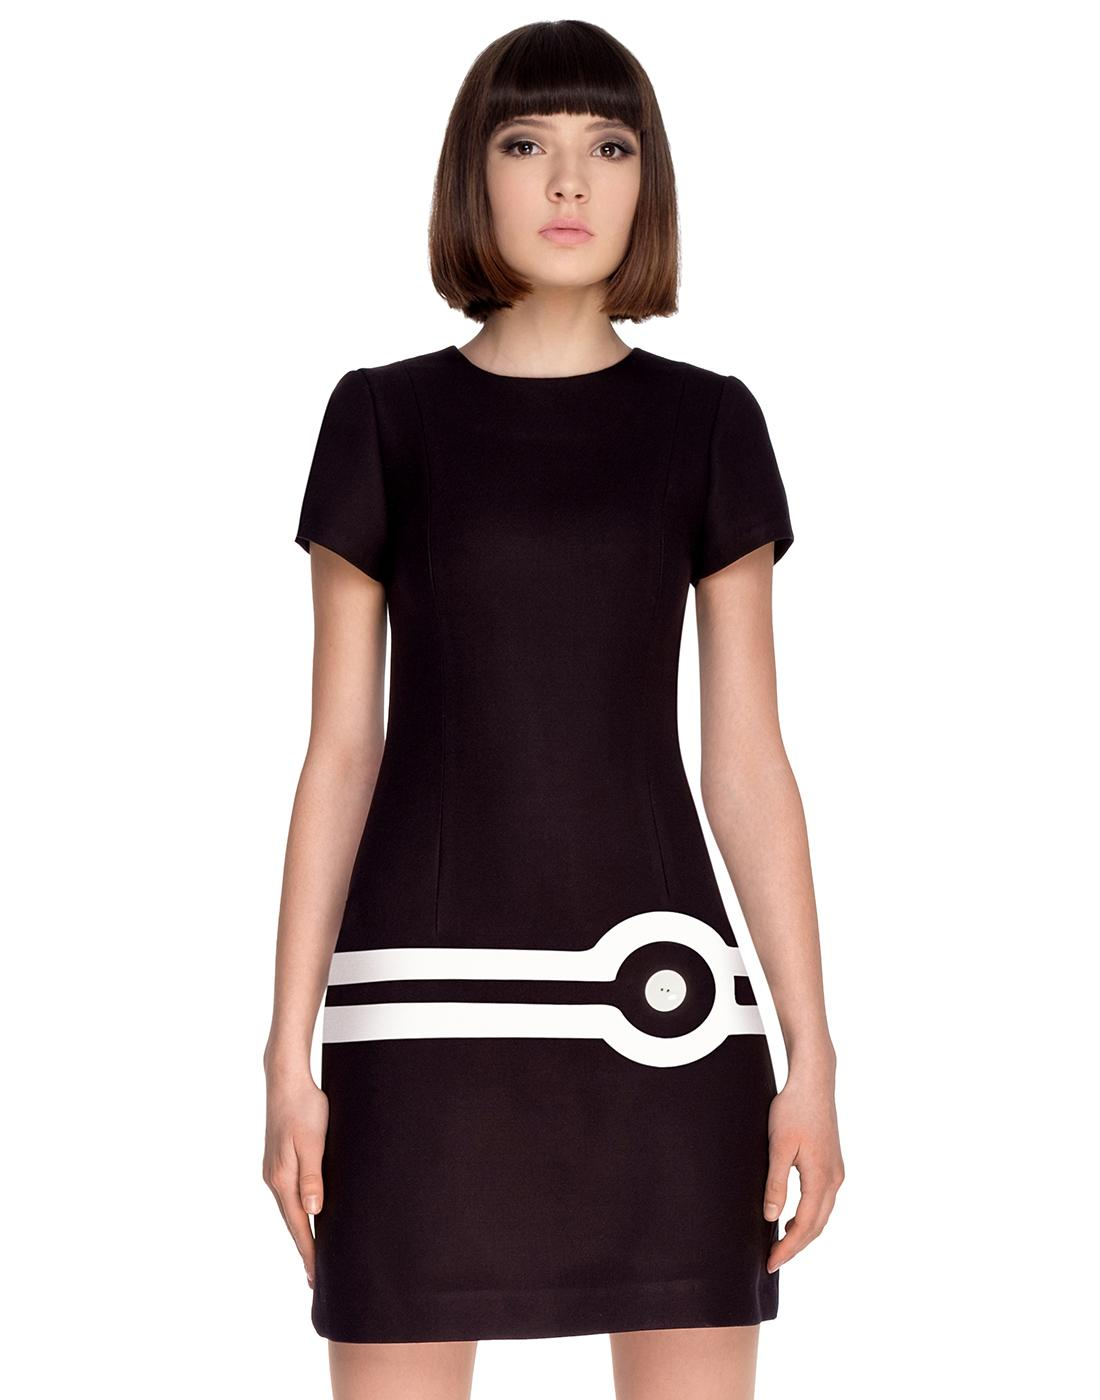 MARMALADE Retro 60s Mod Target Dress in Black